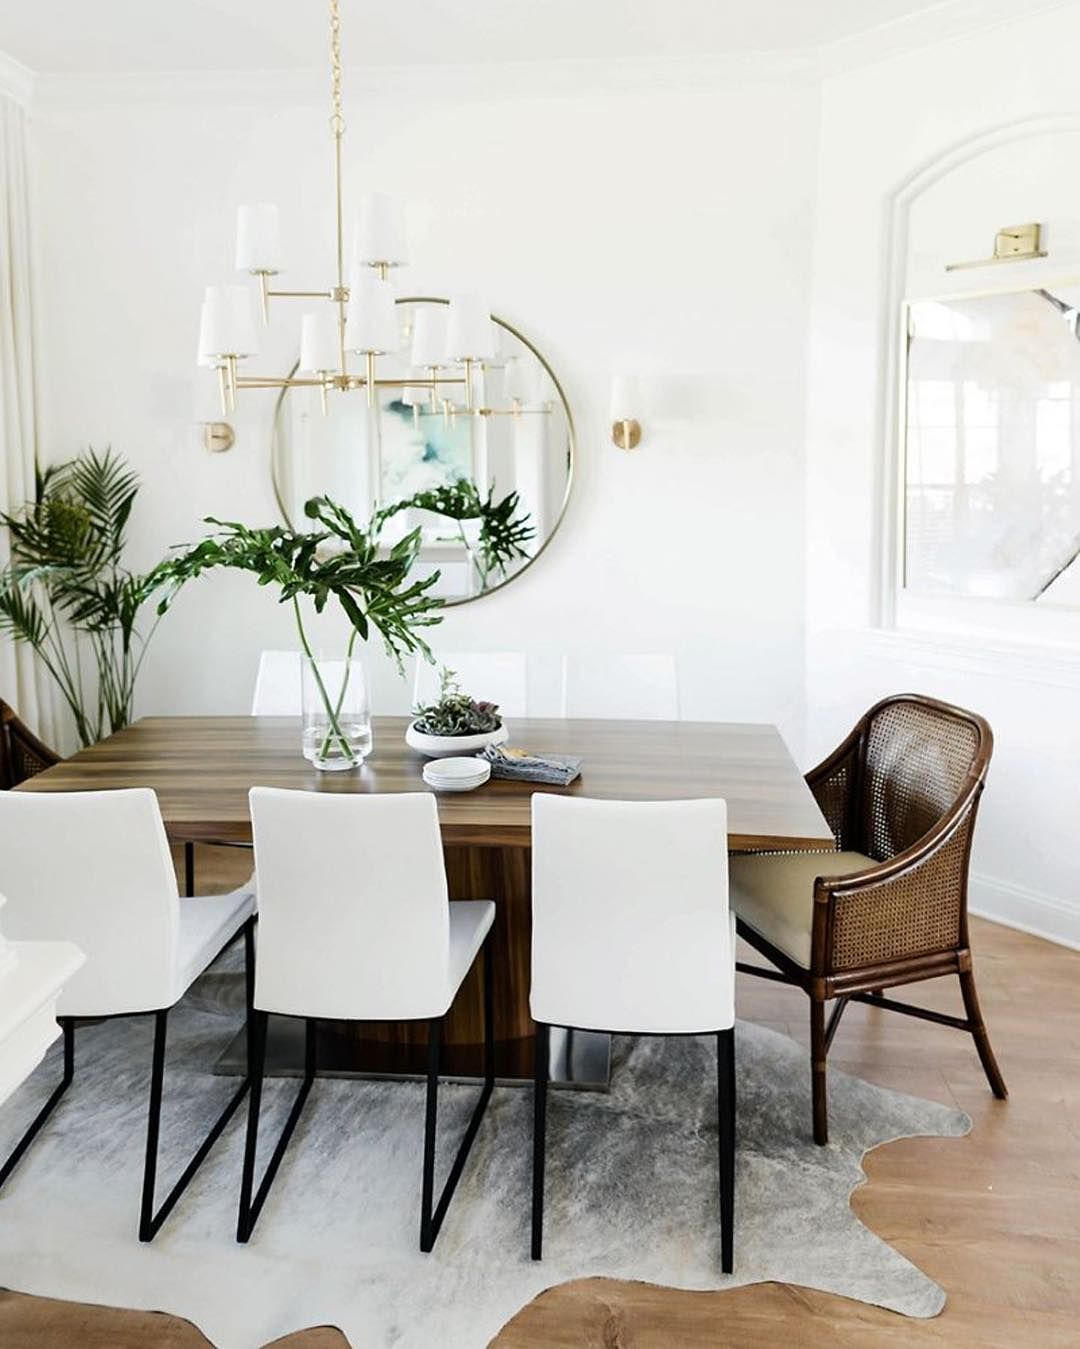 Shay Cochranes Gorgeous Neutral Dining Room Via @theeverygirl_